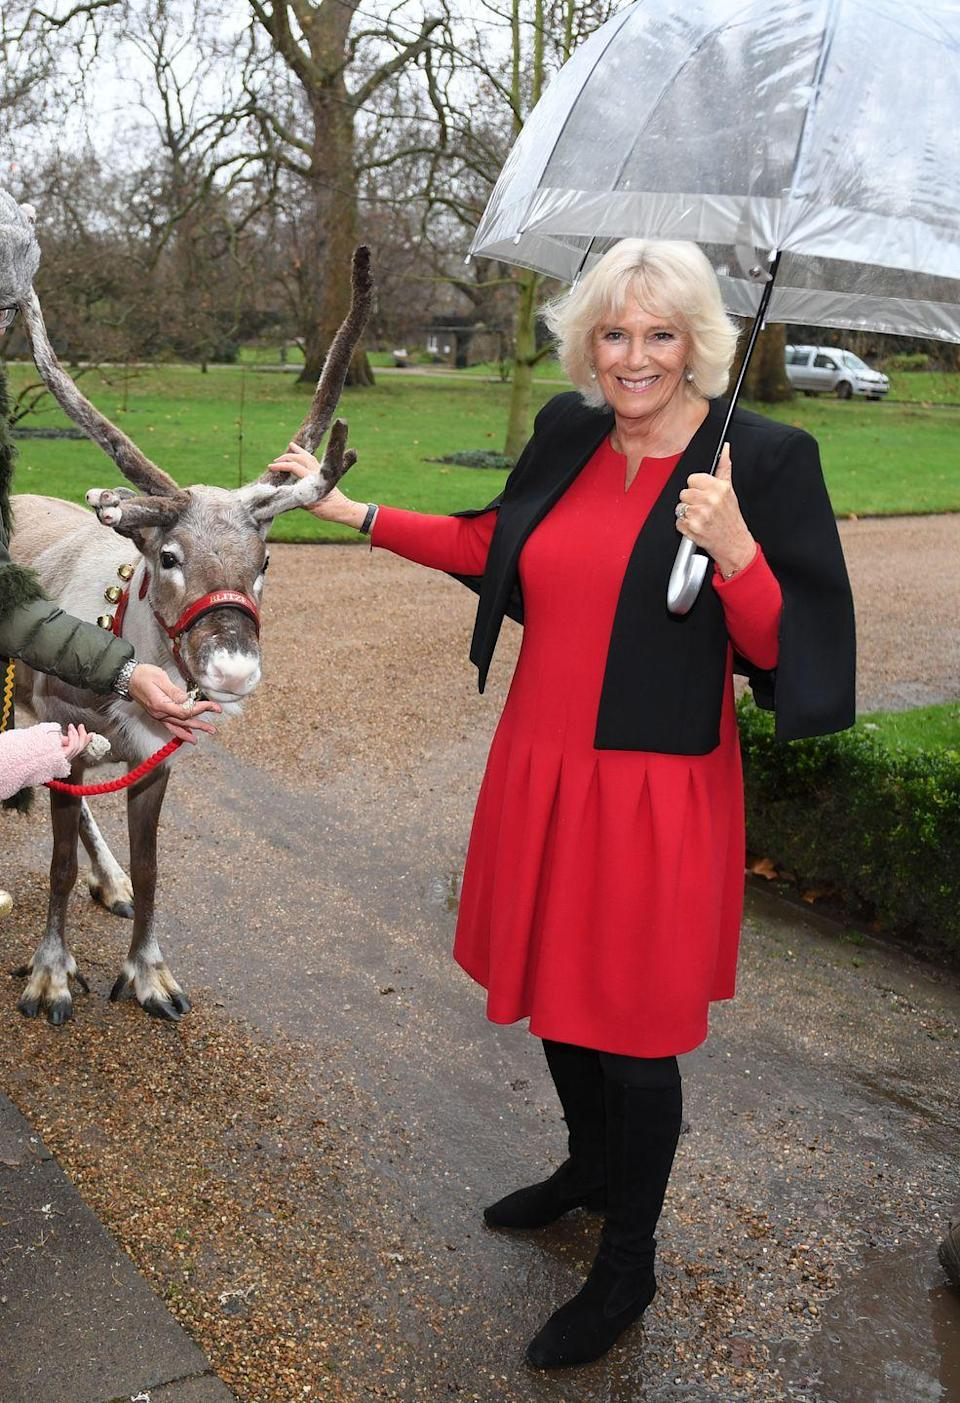 <p>Looking very festive in a red dress and black capelet, the Duchess hosted her annual children's Christmas party at Clarence House. The holiday lunch invites children who are seriously ill to enjoy activities including tree decorating and meeting reindeer. </p>